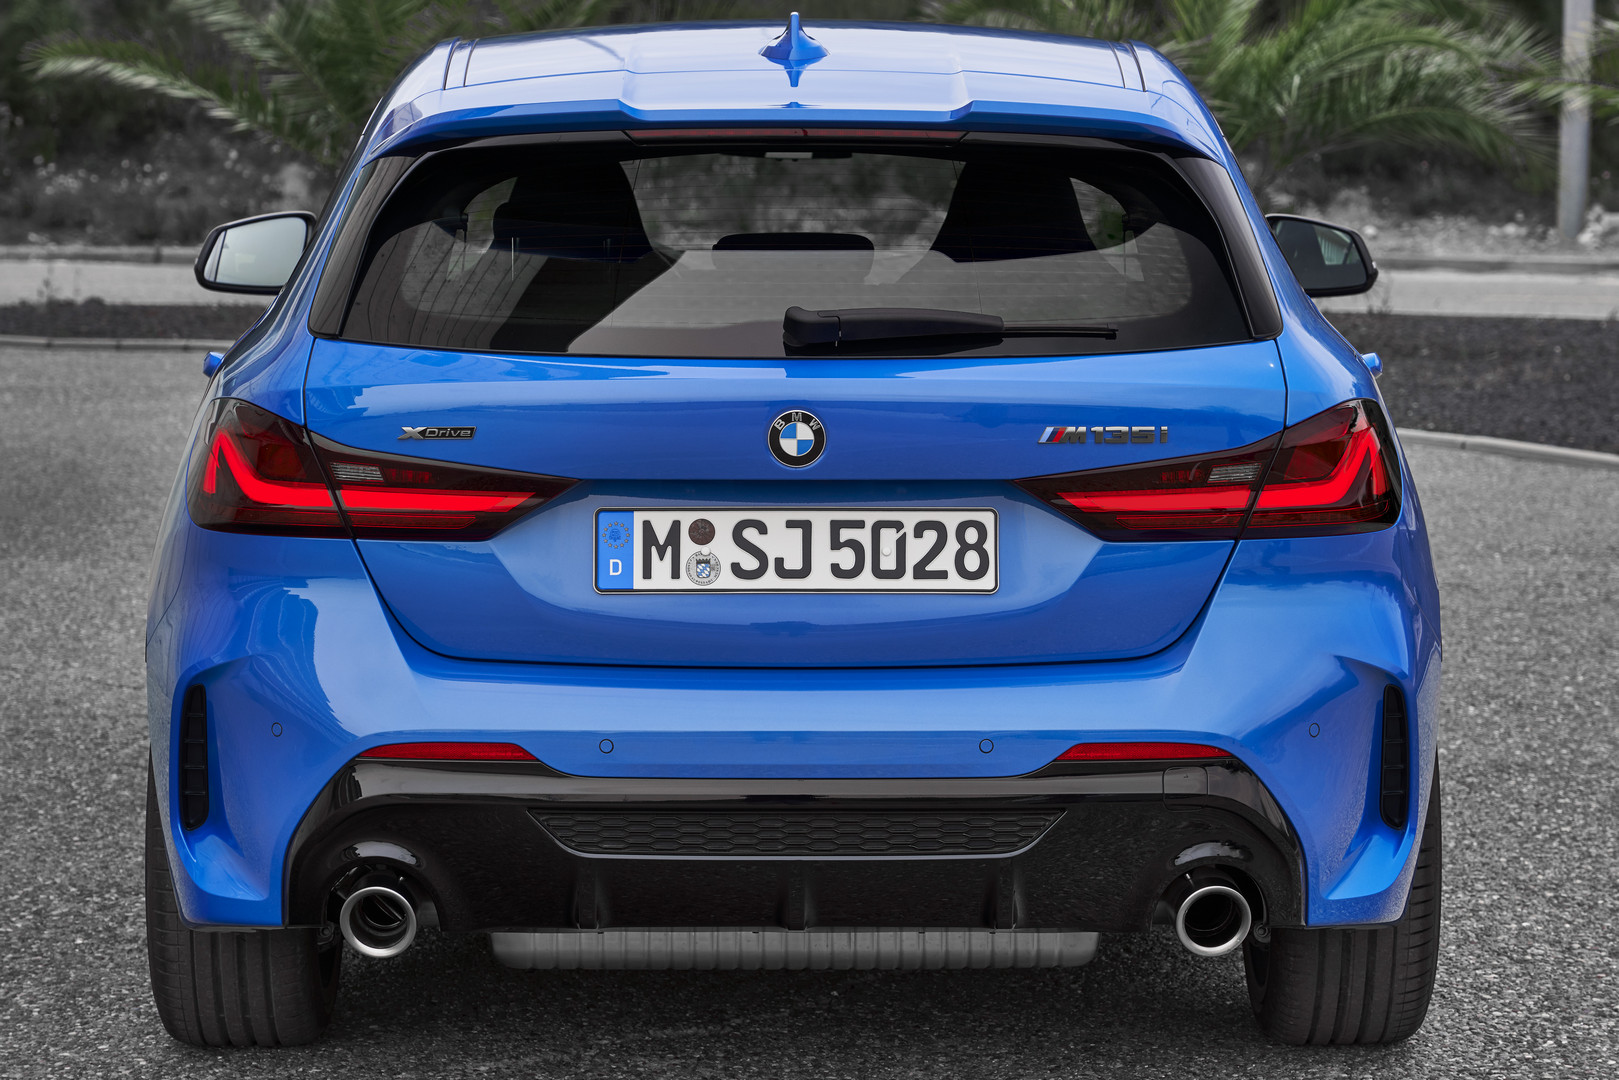 2020 BMW M135i Rear View